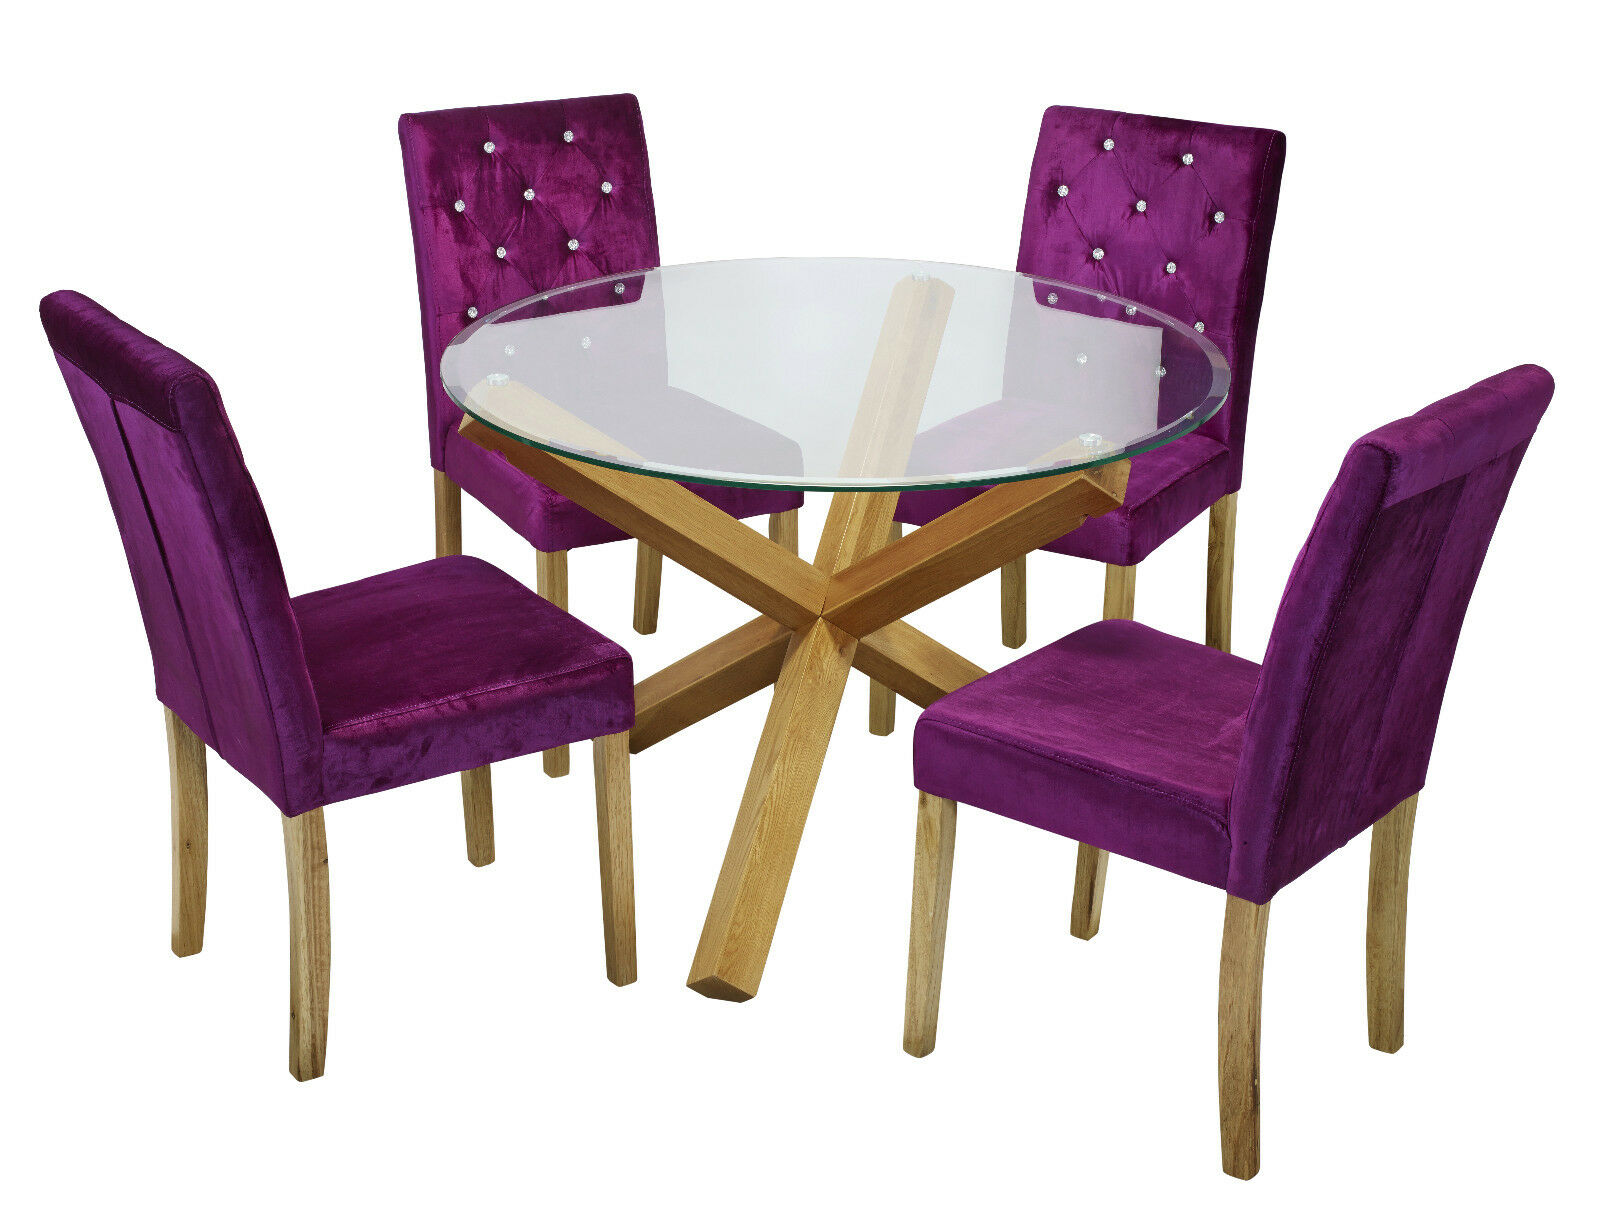 Details About Trend Solid Oak Round Gl Top Dining Table 4 Amour Purple Fabric Chair Set